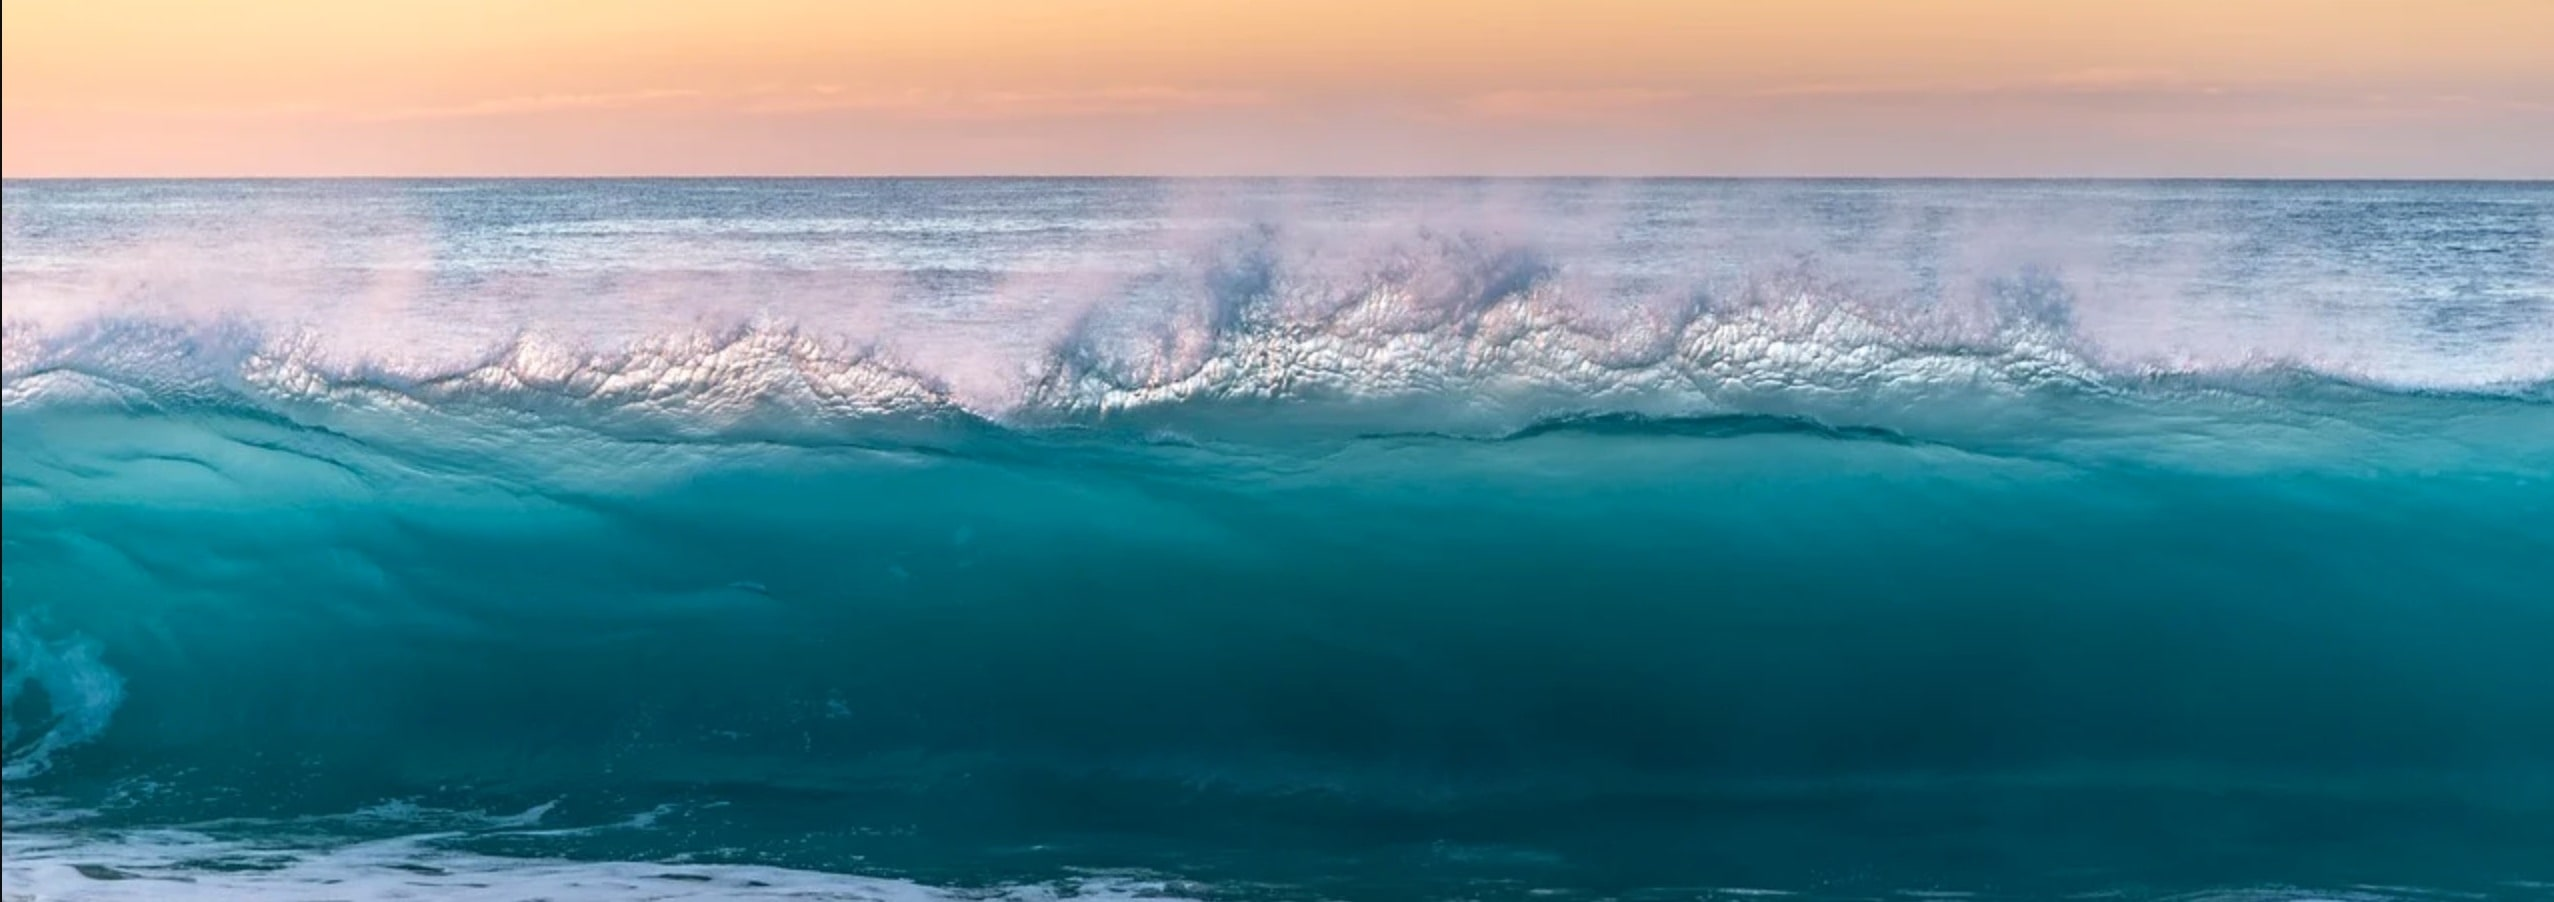 vague australie